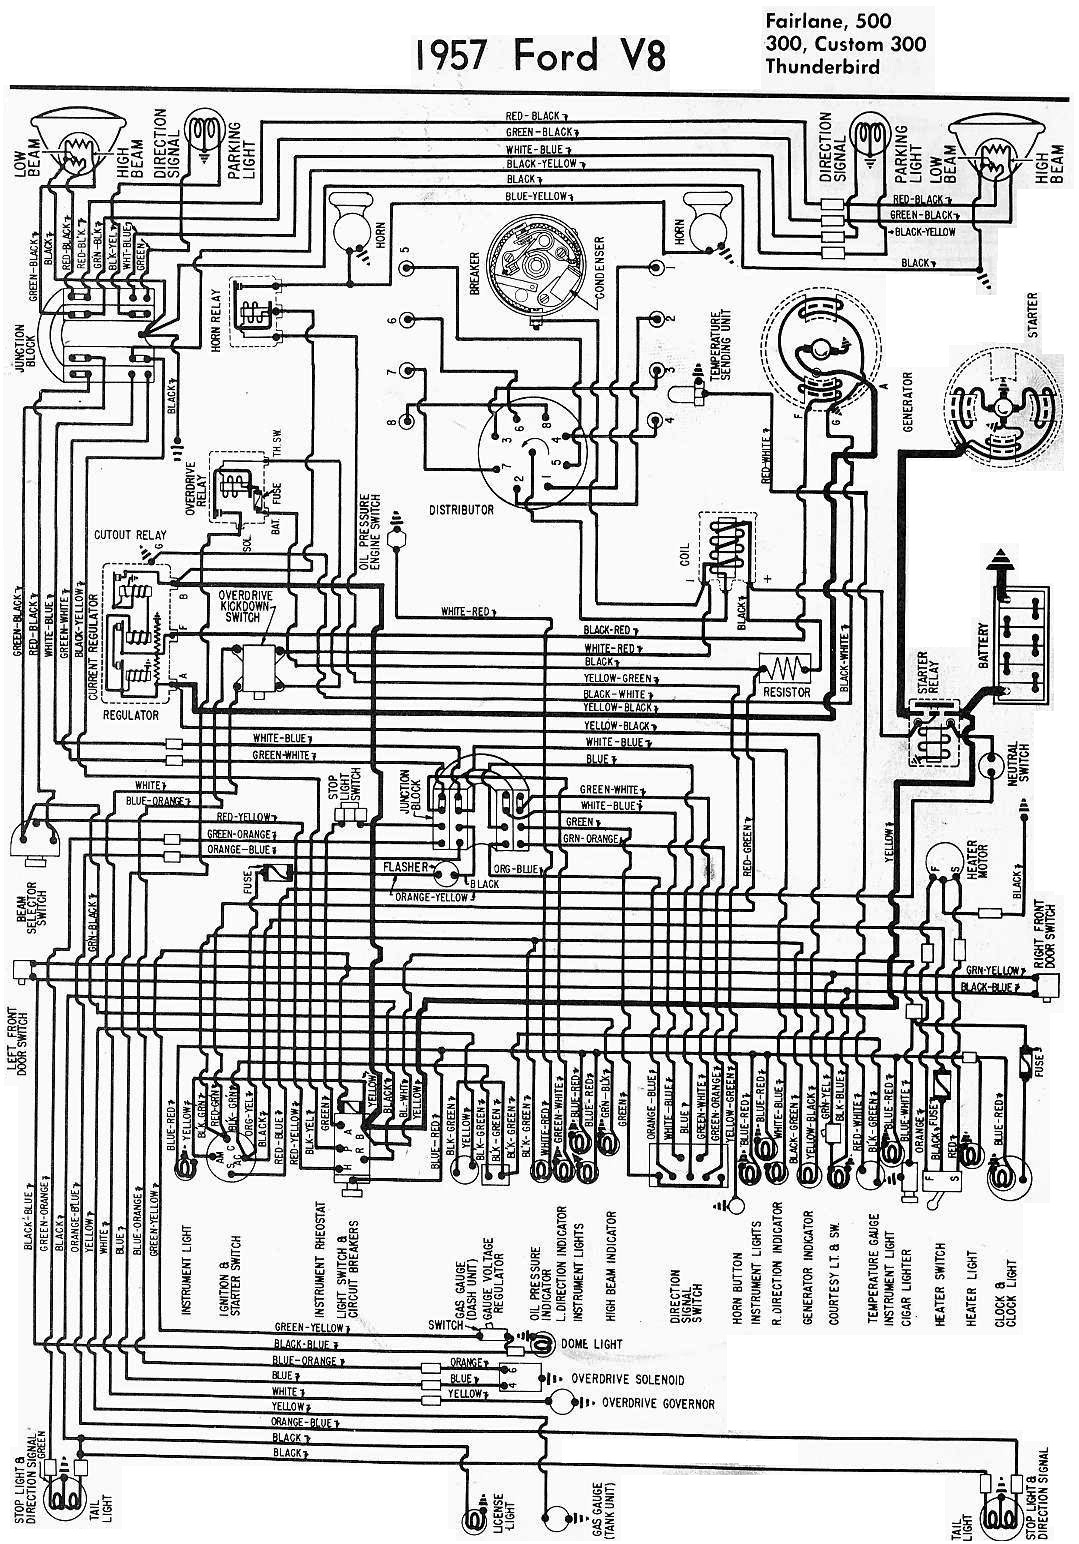 1957+Ford+Fairlane+500%252C+300%252C+And+Custom+300+Complete+Electrical+Wiring+Diagram wiring diagram for 1977 ford f150 the wiring diagram 1968 ford galaxie 500 wiring diagram at fashall.co